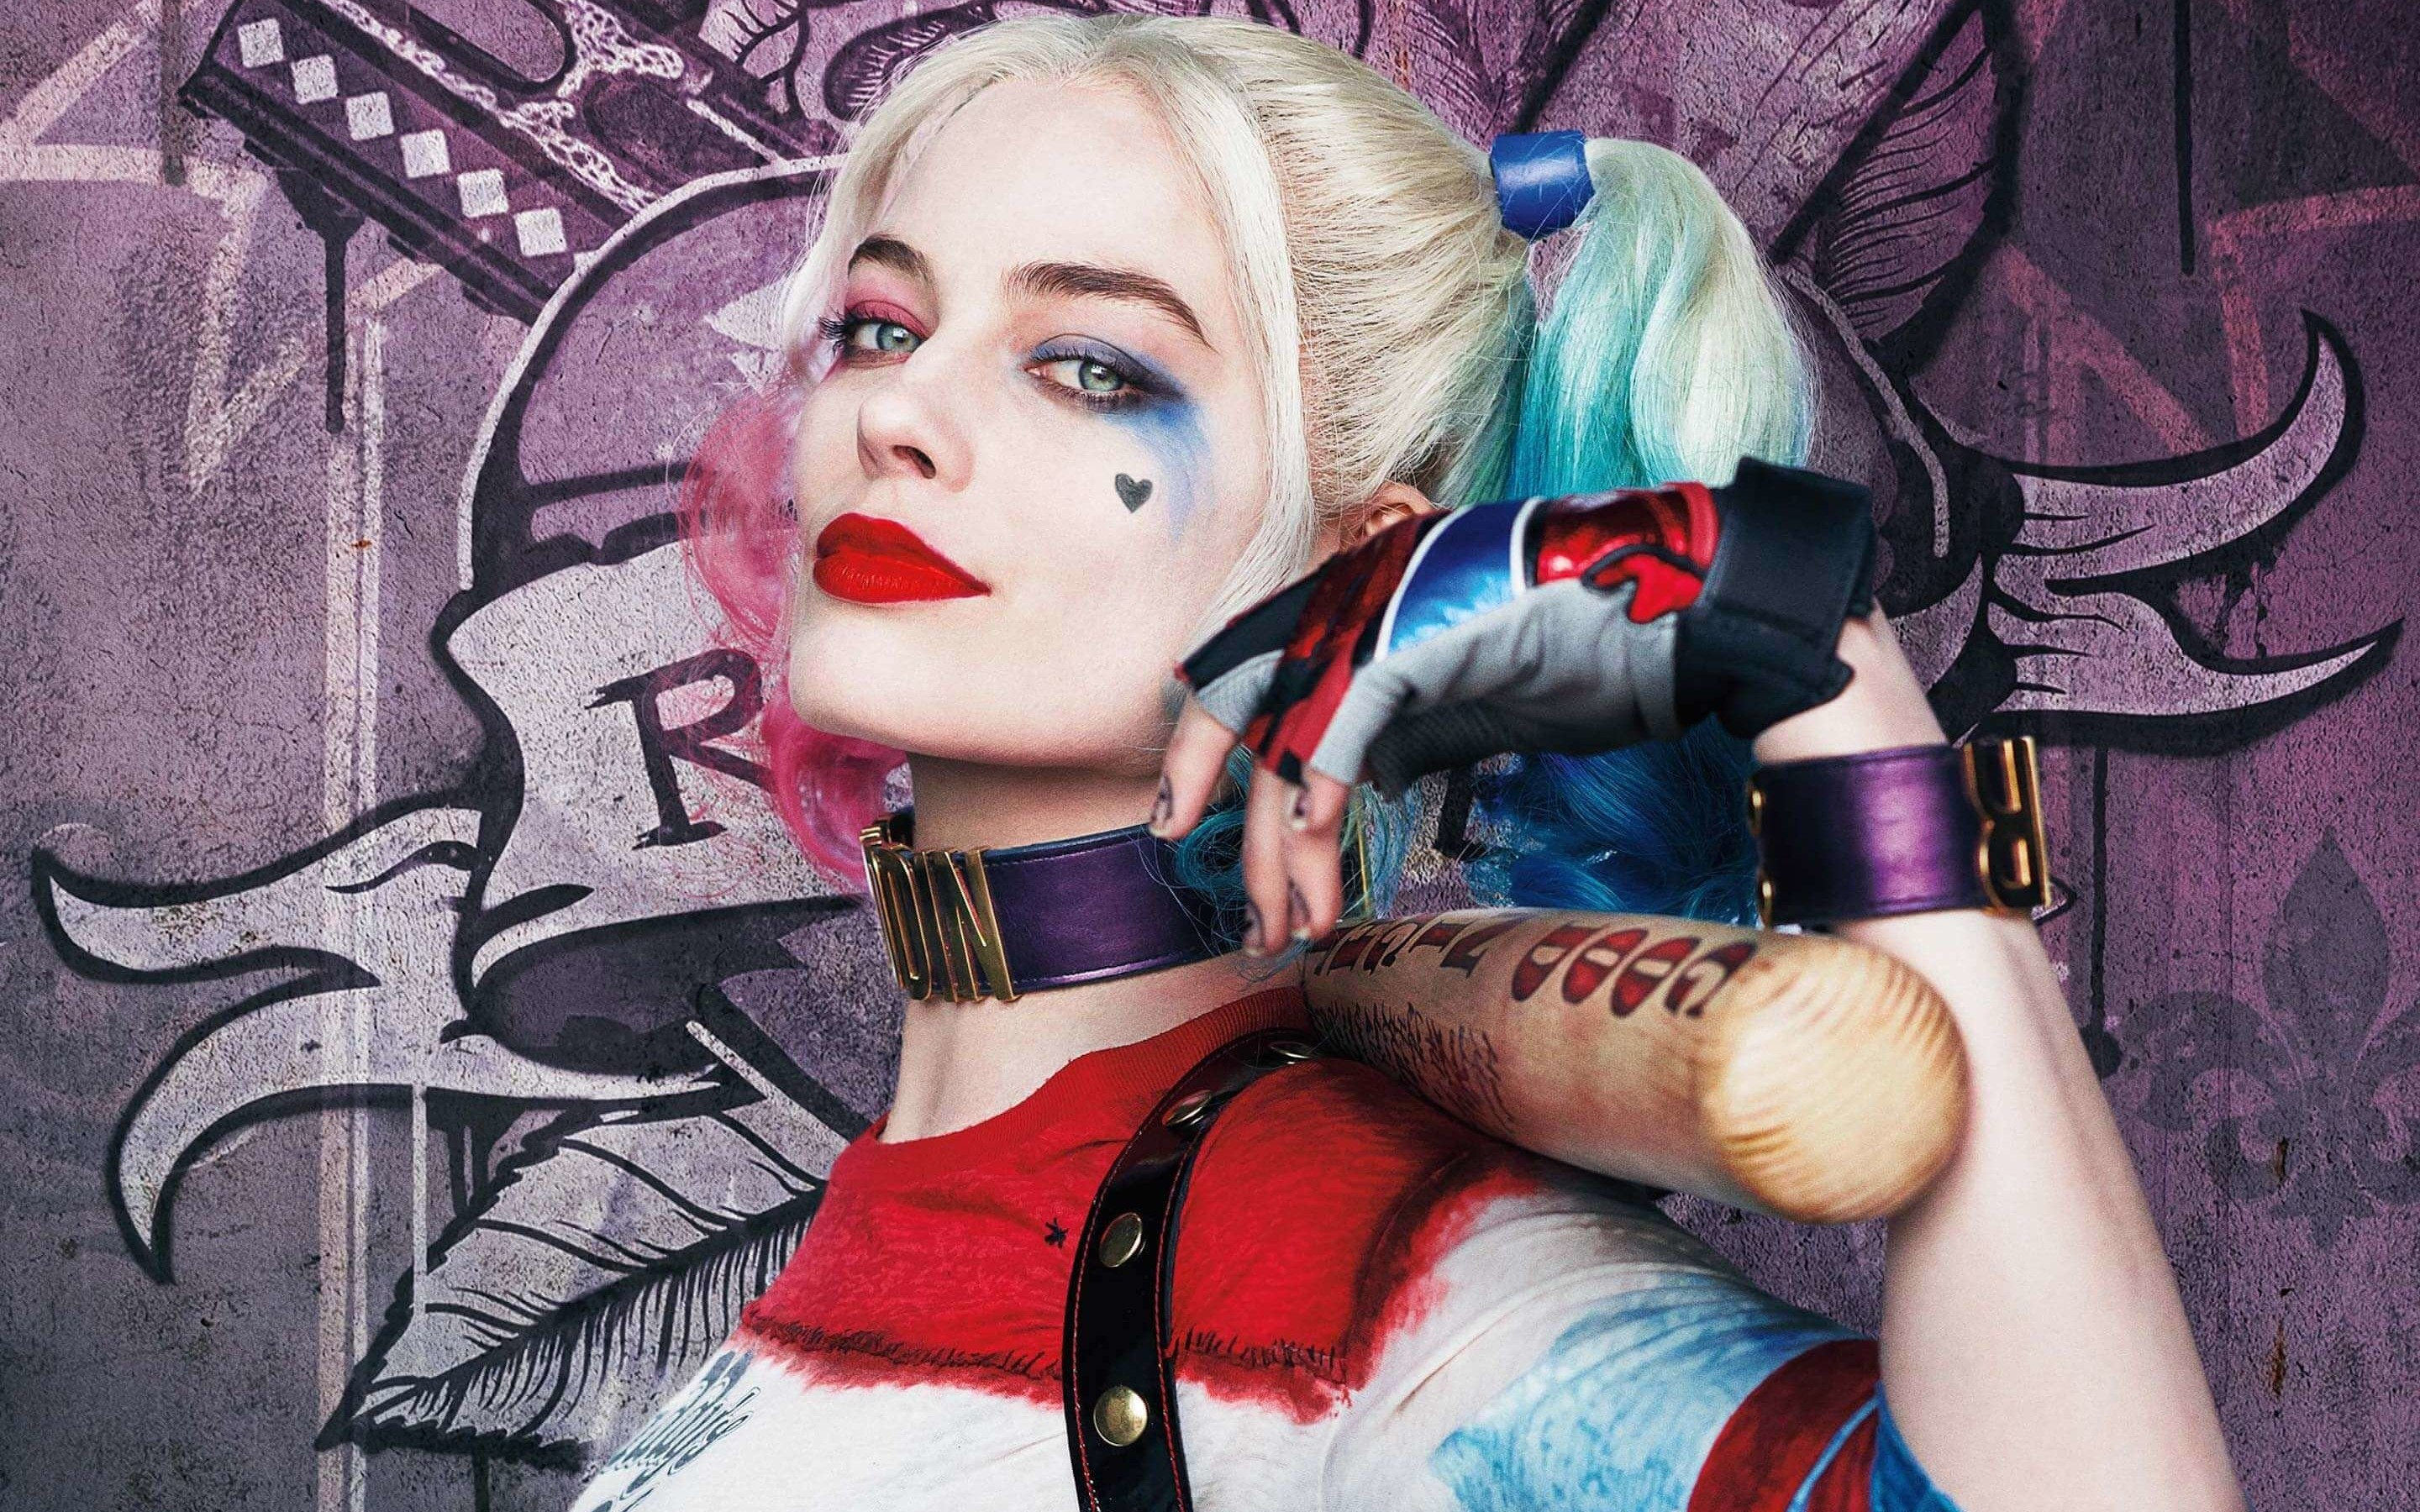 Harley Quinn - Suicide Squad Wallpaper for Desktop 2880x1800